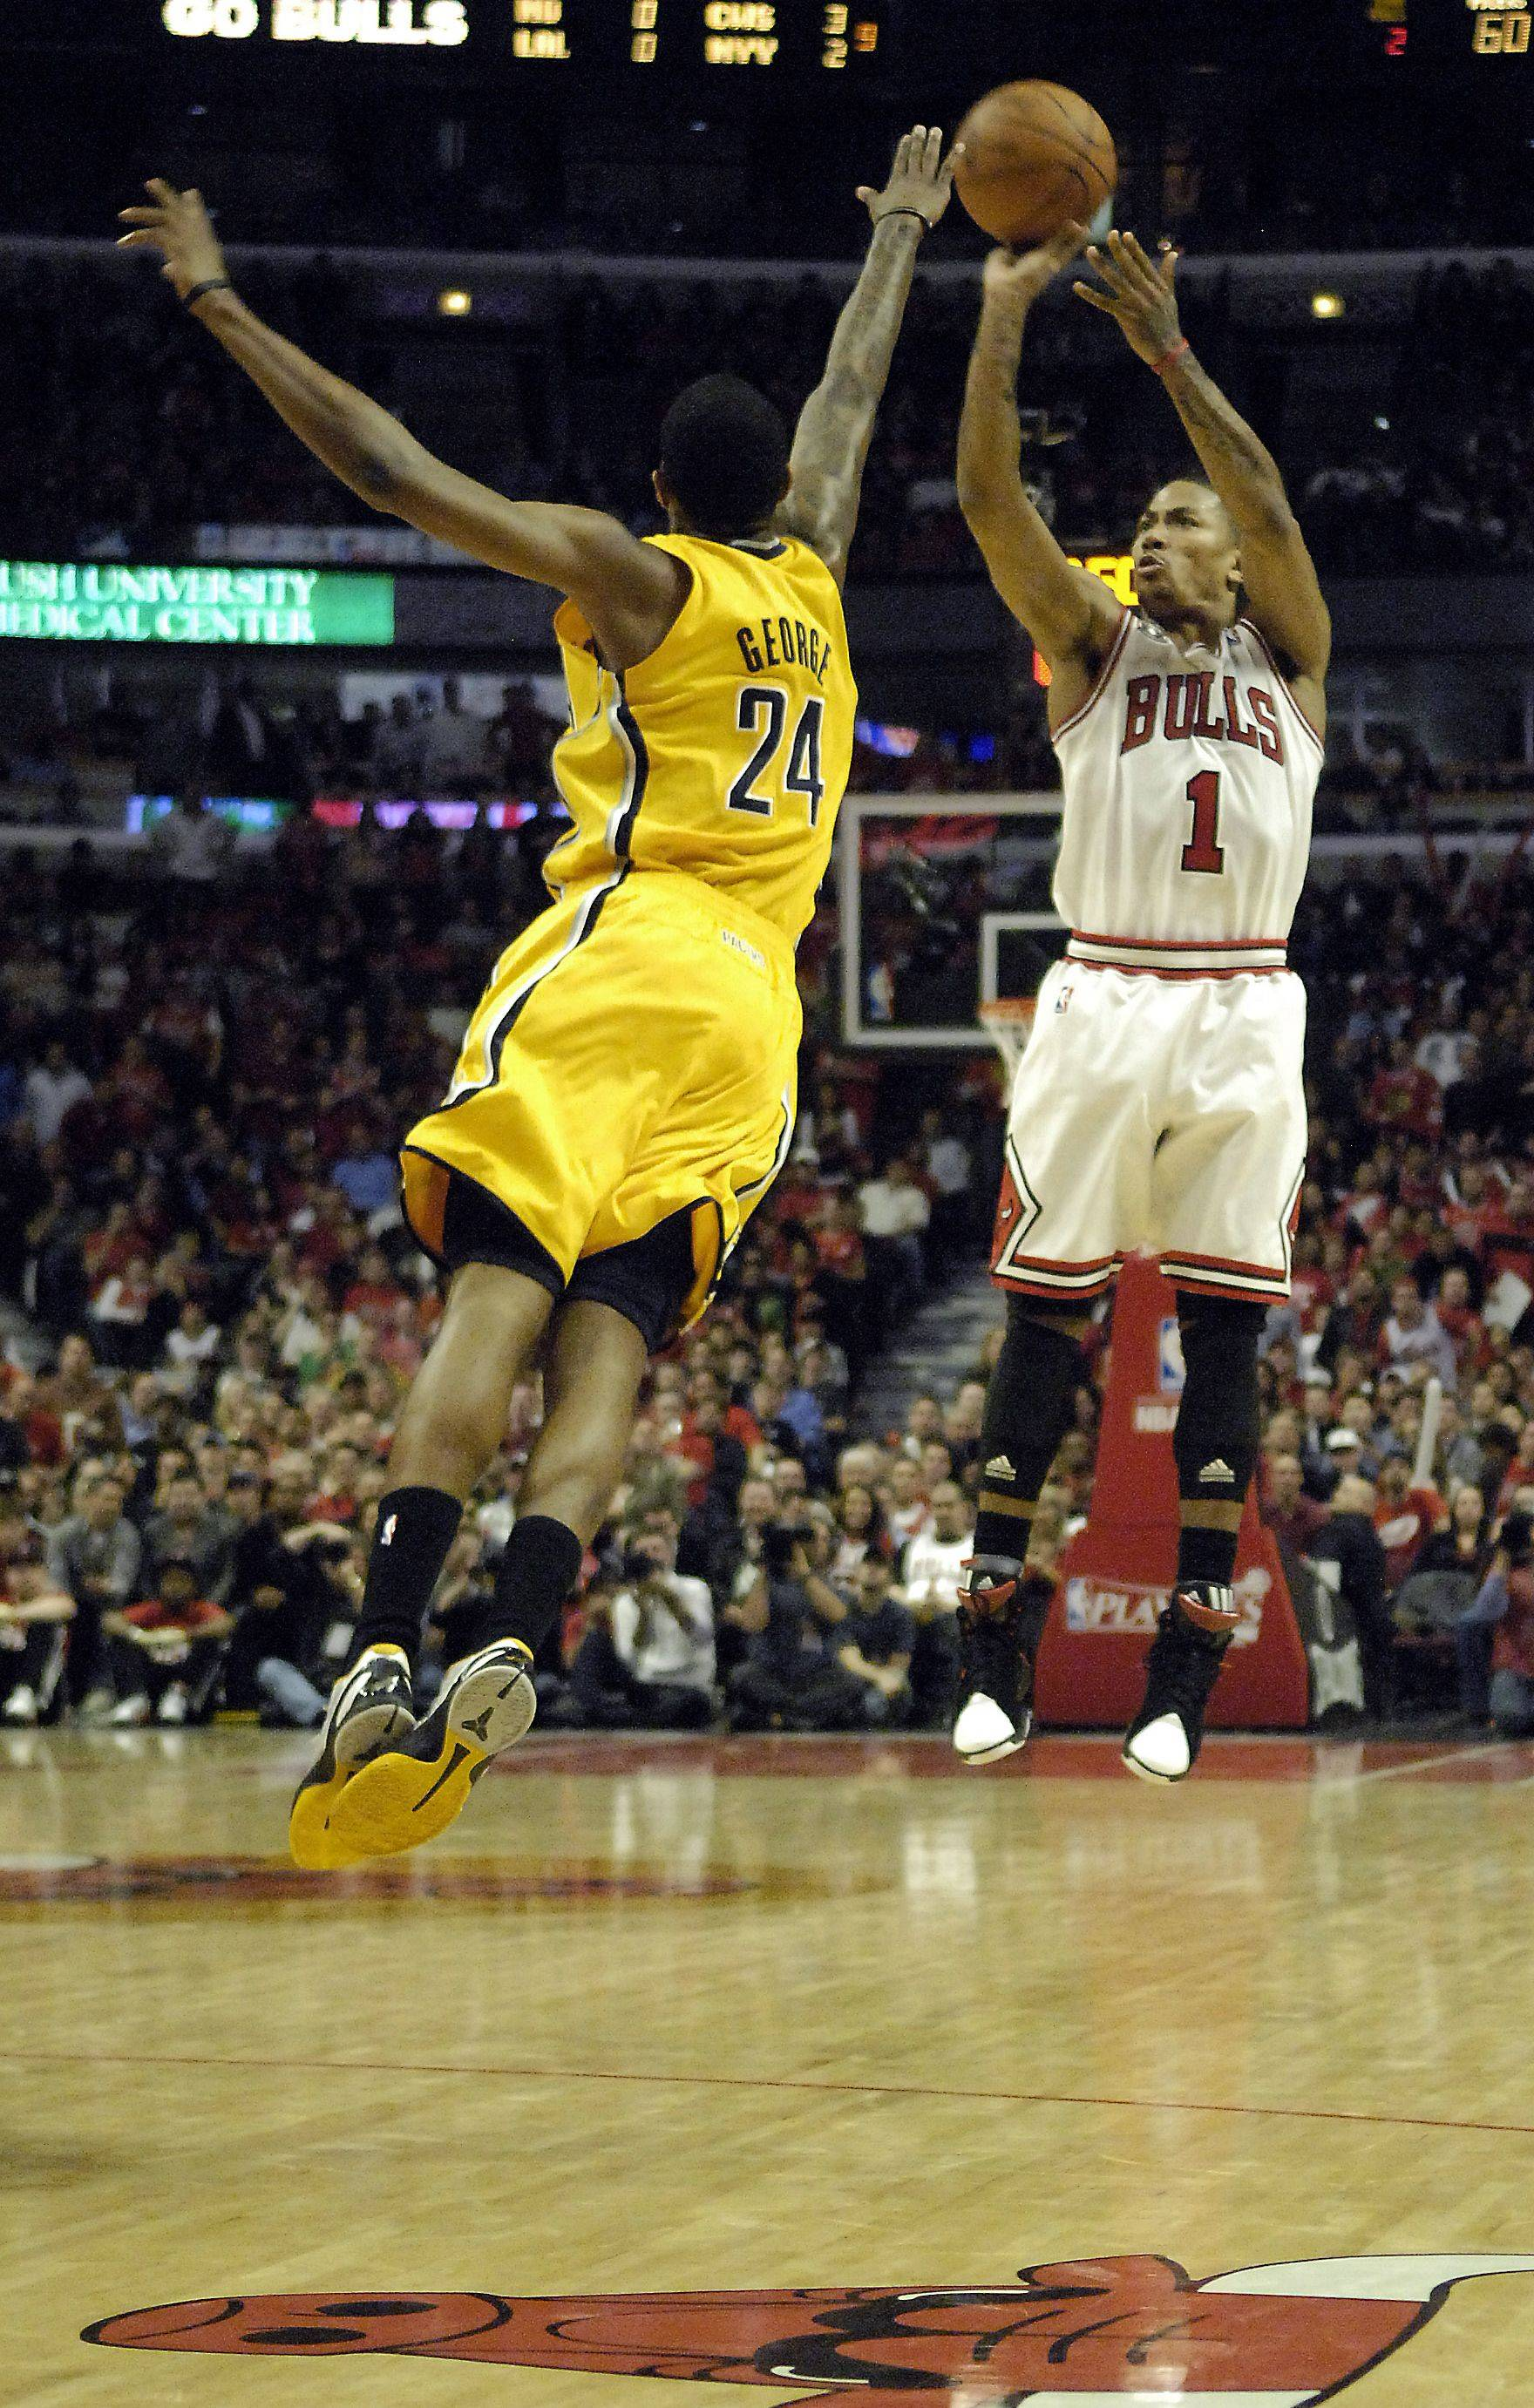 Derrick Rose drains a 3-point shot in the third quarter to stop an Indiana comeback. In a third-quarter flurry Rose blocked a dunk attempt and hit three 3-point shots Tuesday night against the Pacers at the United Center.